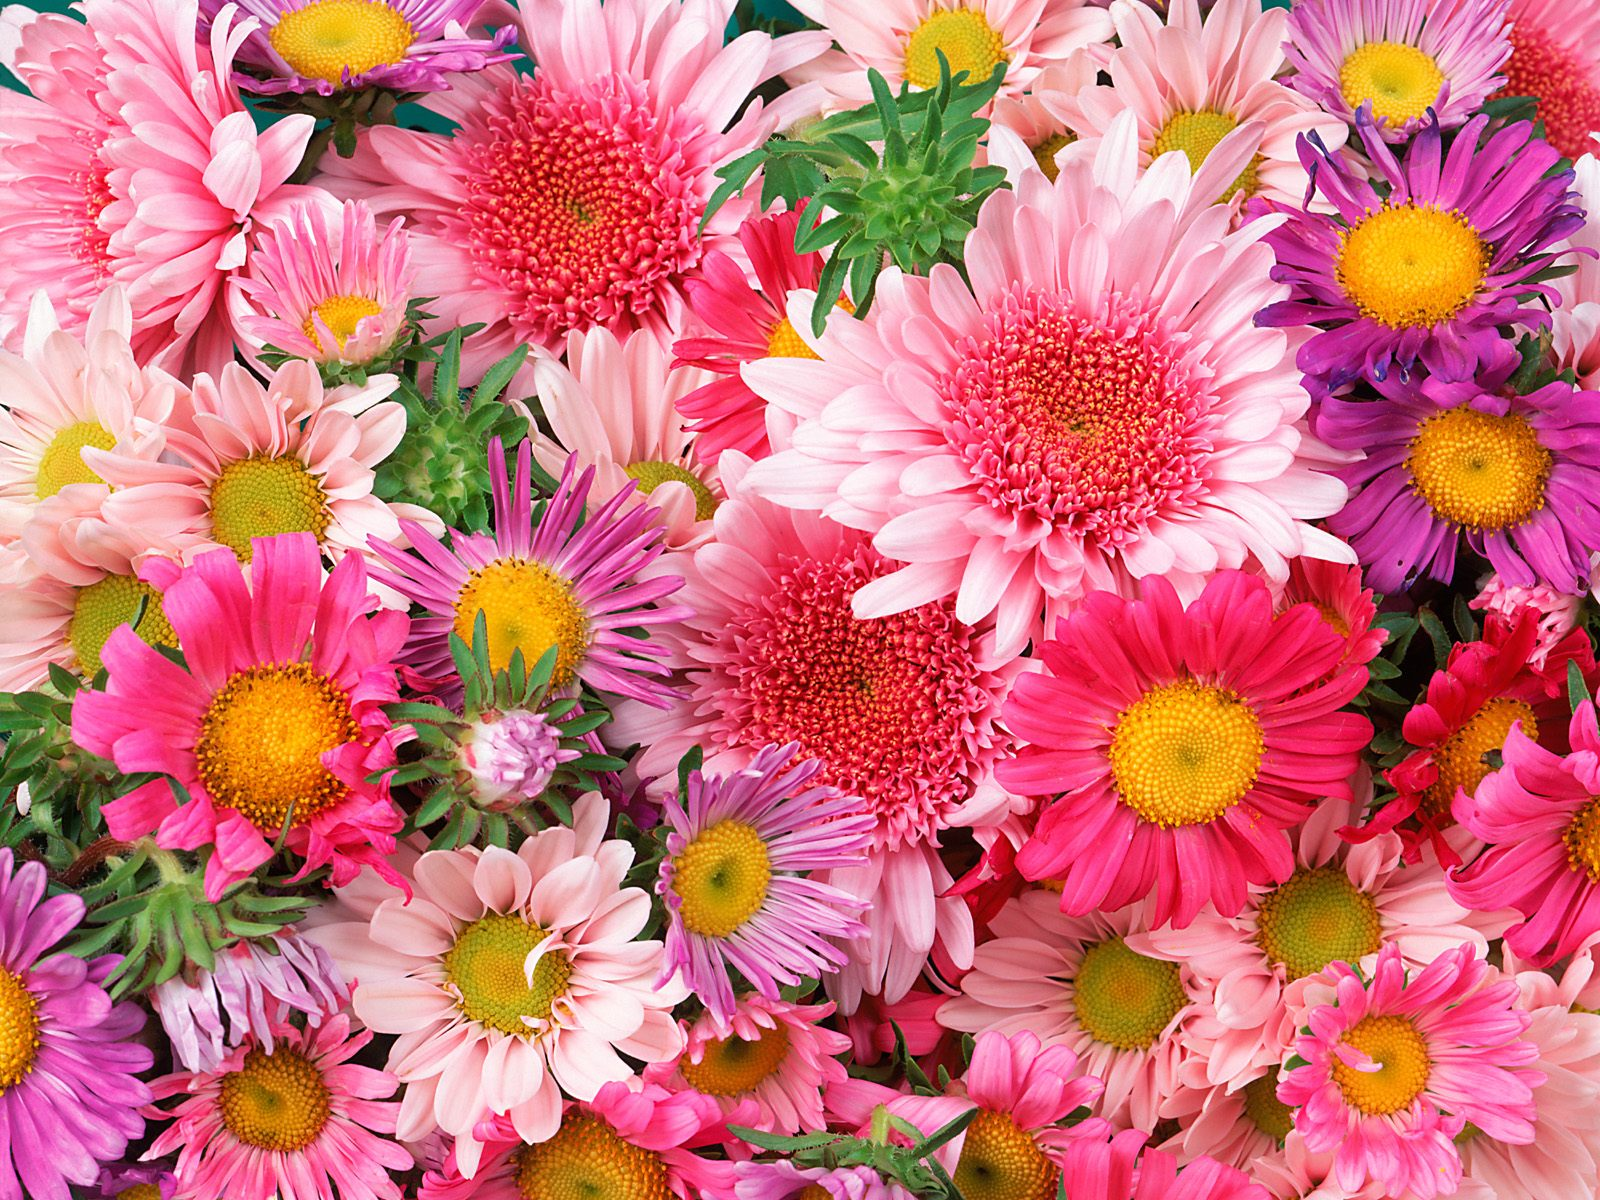 Free Download HQ Daisies and Mums Flowers Wallpaper Num 389 1600 x 1200 49